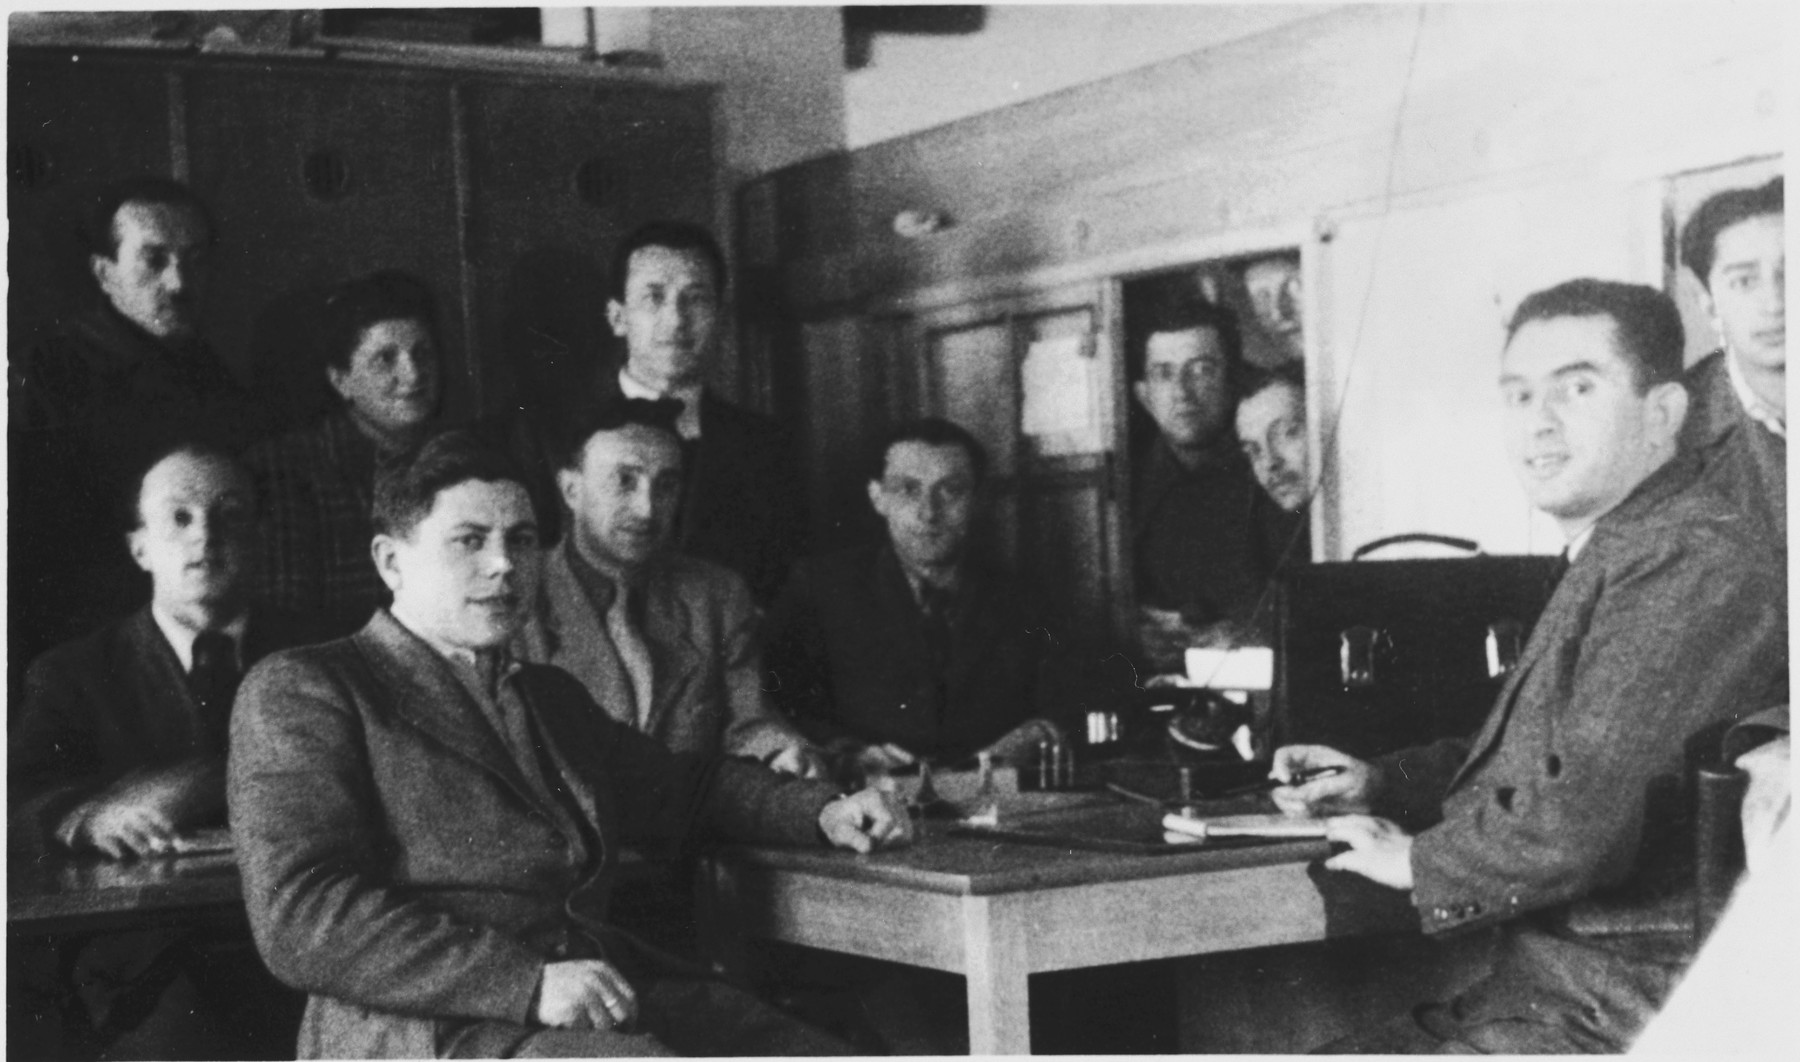 A group of men pose inside an administrative office in the Foehrenwald displaced persons' camp.  Pictured in the bottom left is Sam Spiegel, originally from Kozienice.  Also pictured is Fishl Burakowski, seated behind the desk in the center of the photo.